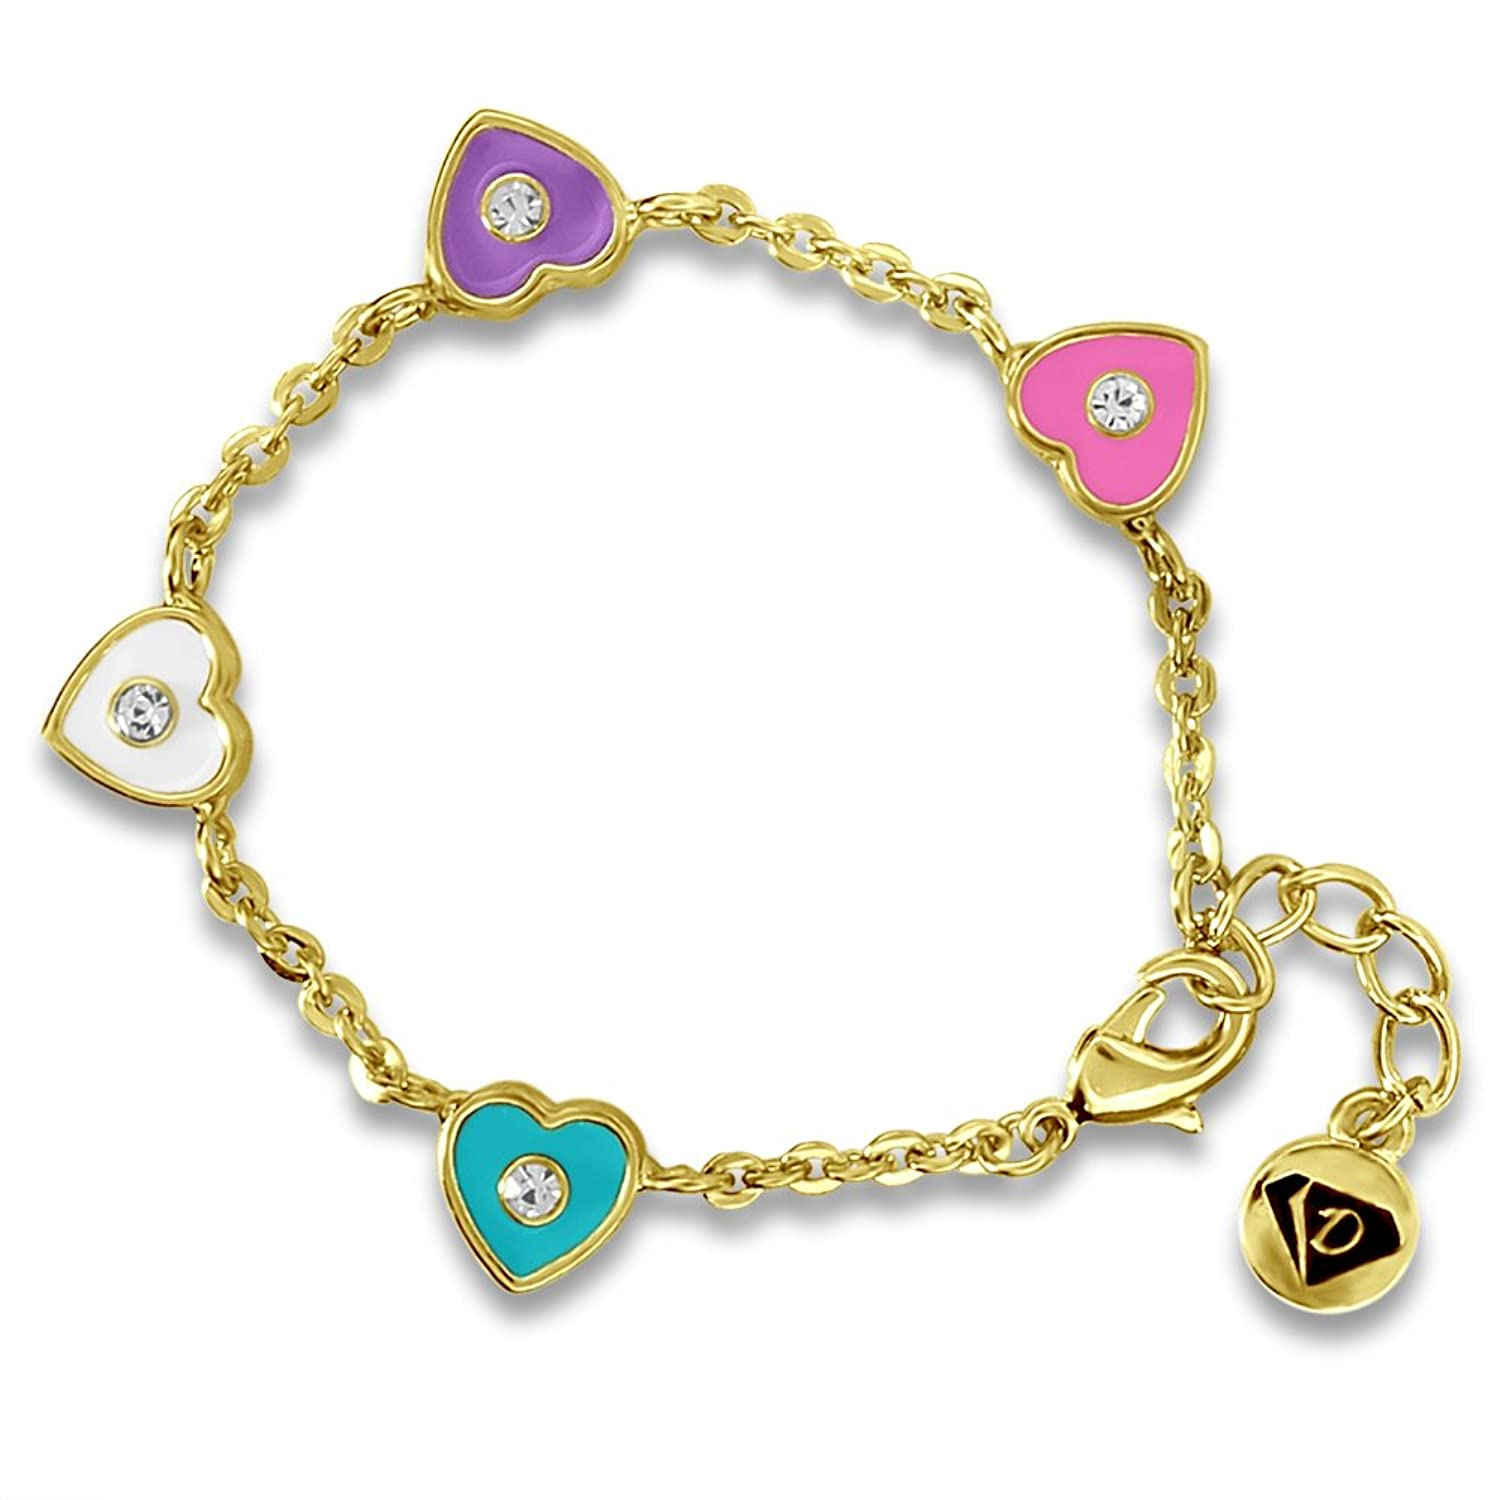 Amazon.com: Kids Bracelets Crystal & Hearts Bangle Girls Jewelry ...